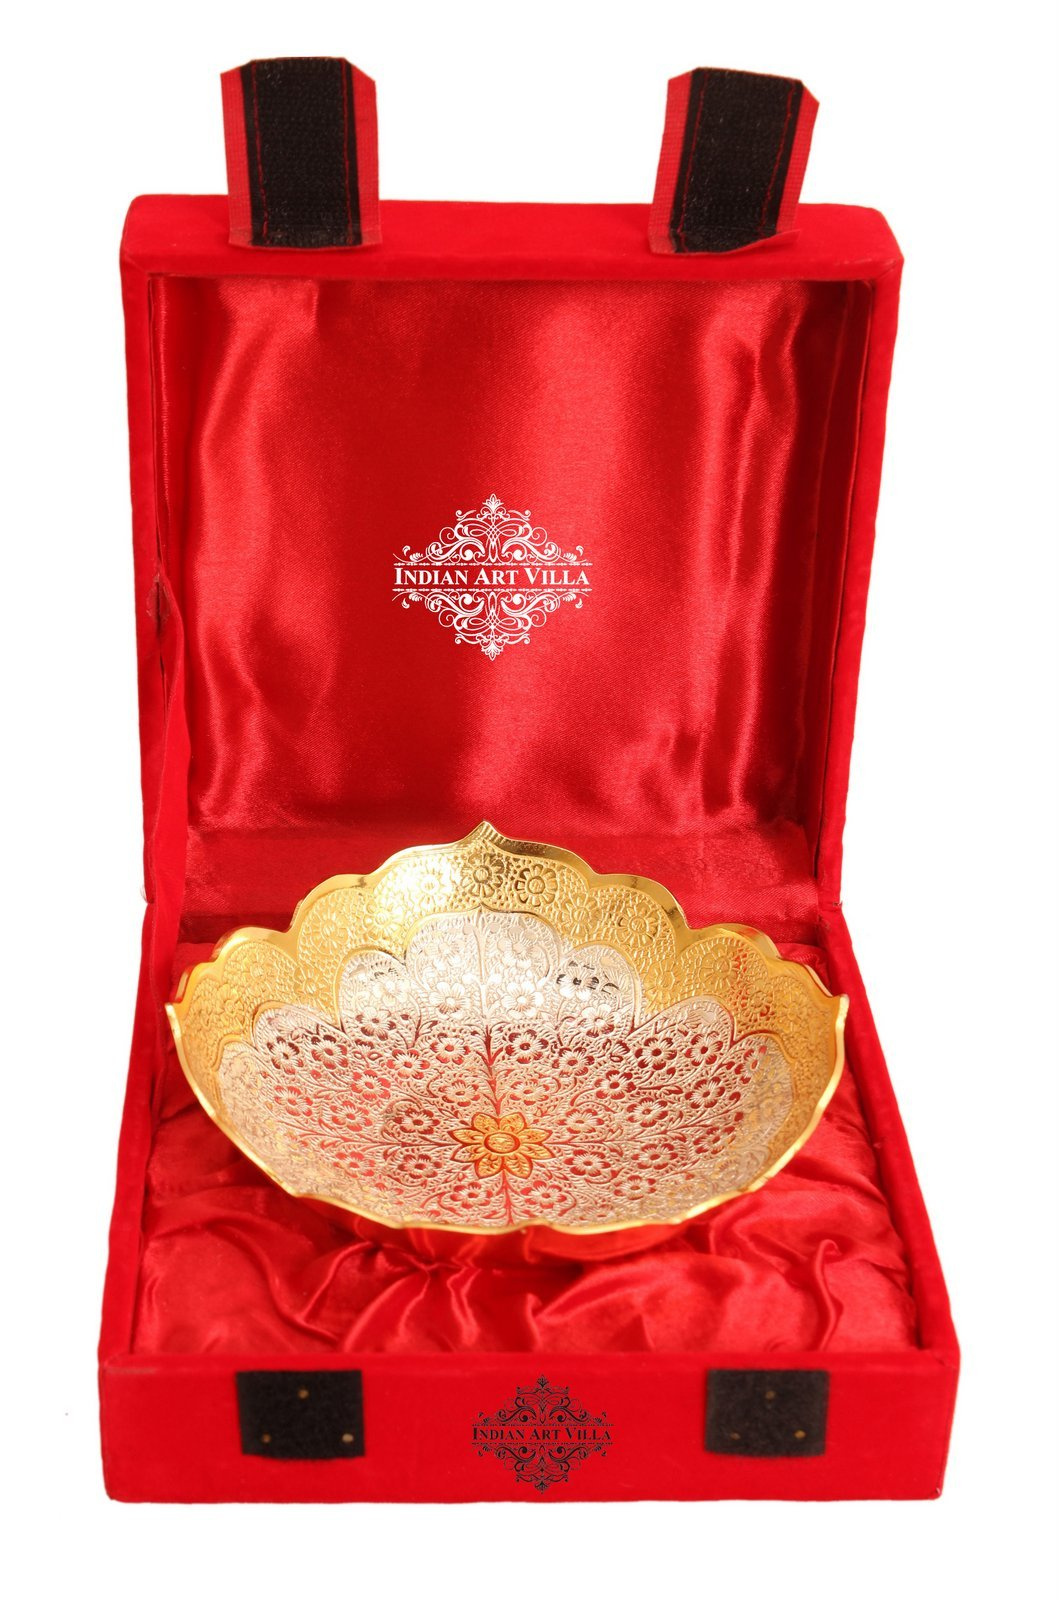 Indian Art Villa Handmade Round Design Silver Plated Gold Polished Deep Dish Bowl - Dry Fruits Desert Home Hotel Tableware Gift Item Decorative